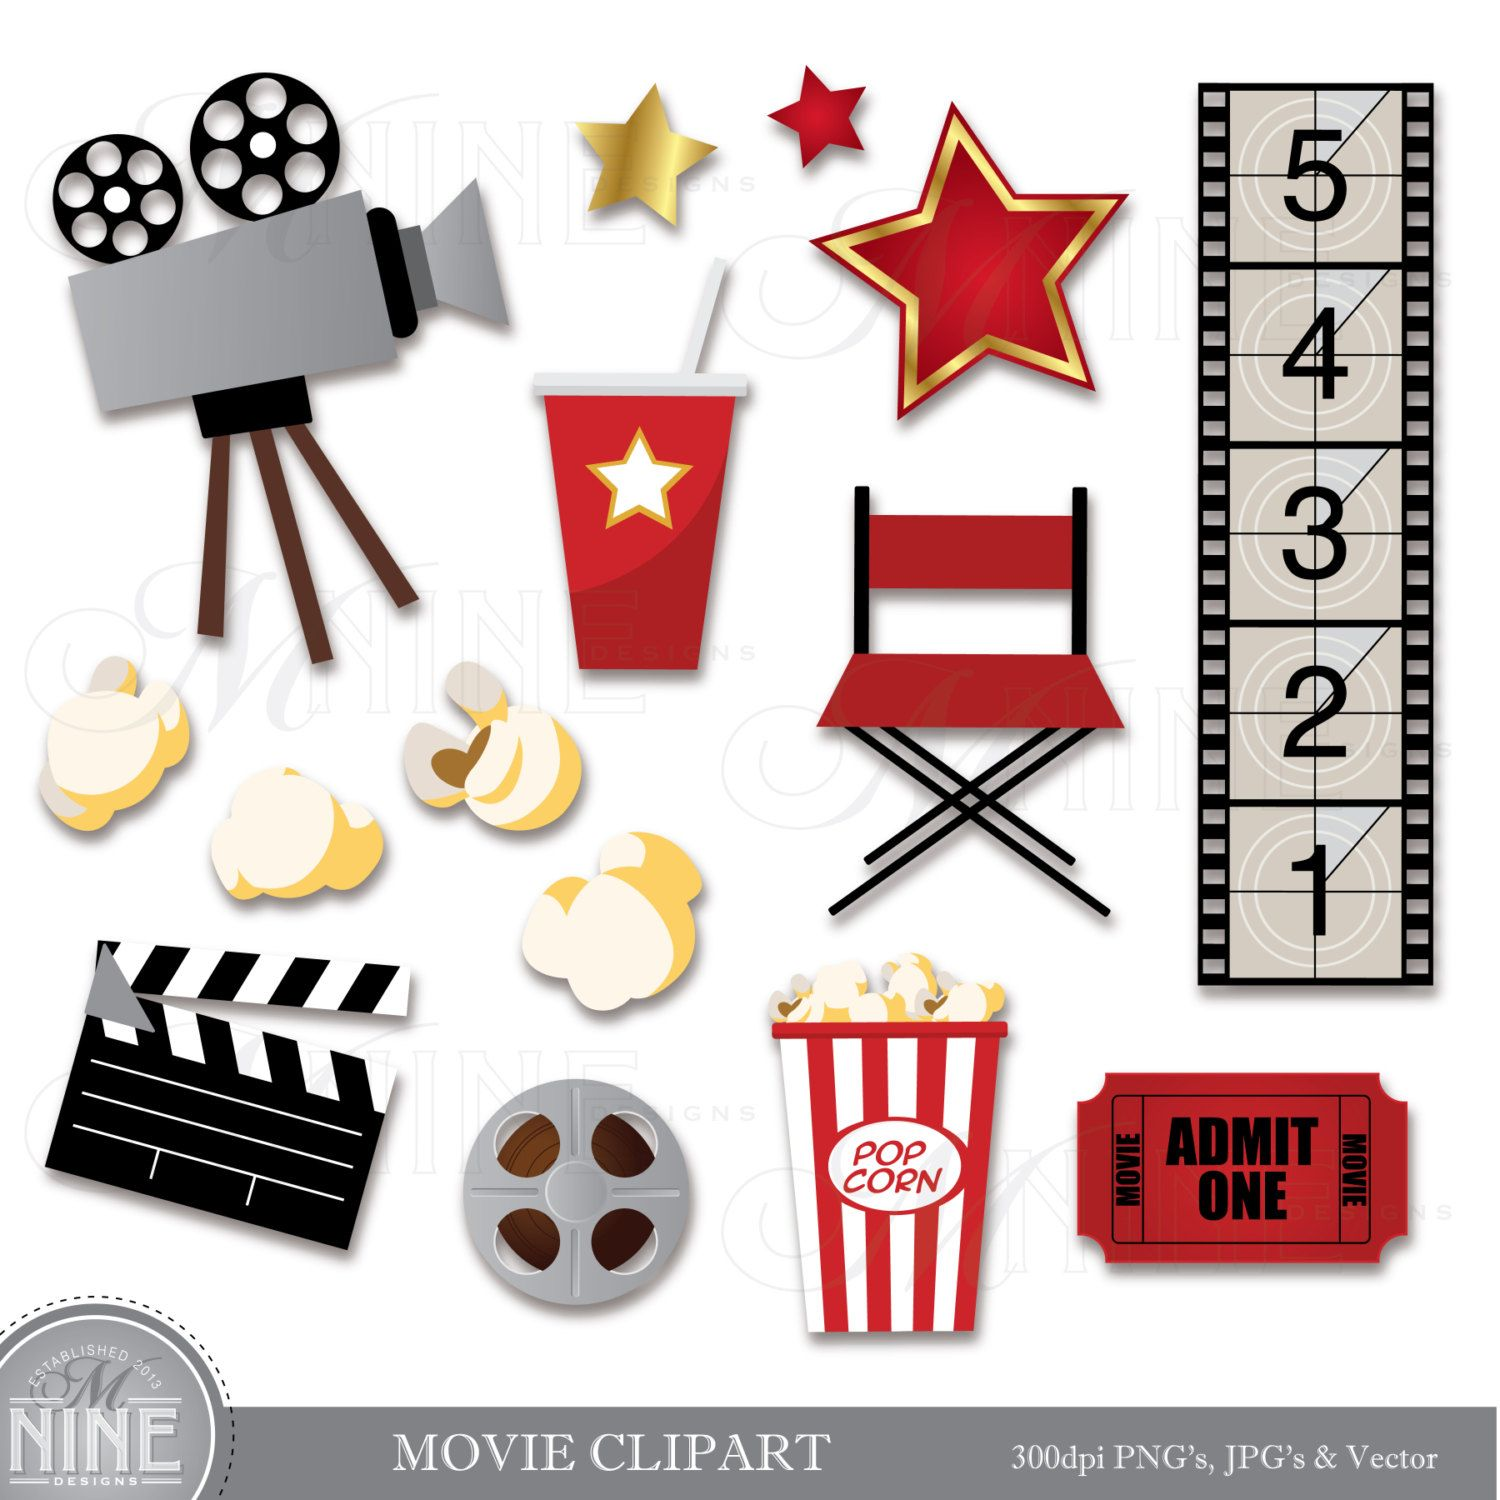 Hollywood clipart theater. Movie clip art download